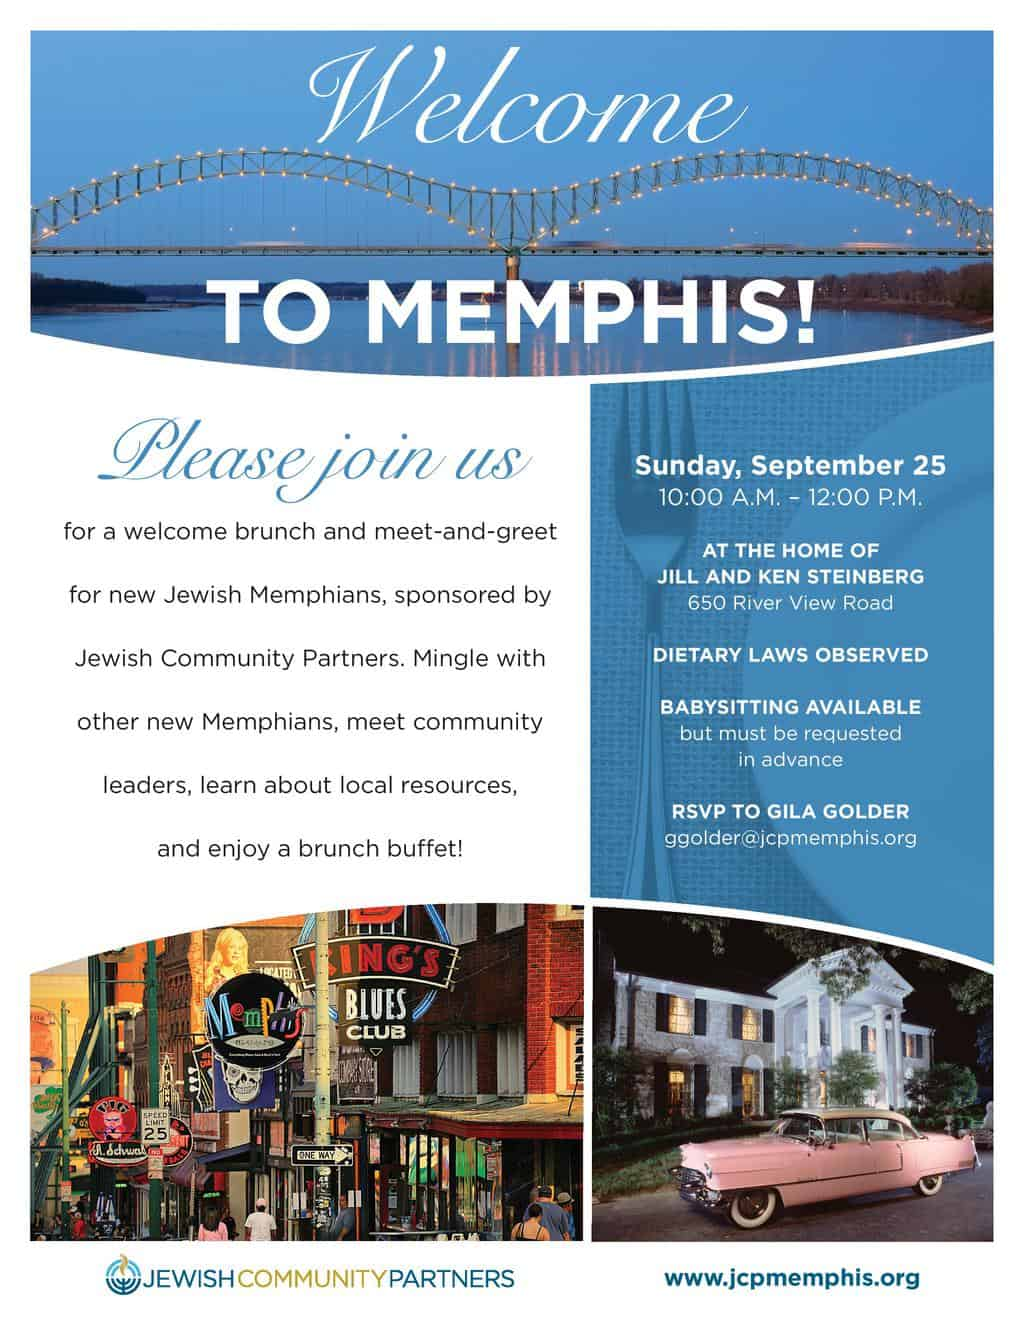 welcome-brunch-for-new-jewish-memphians